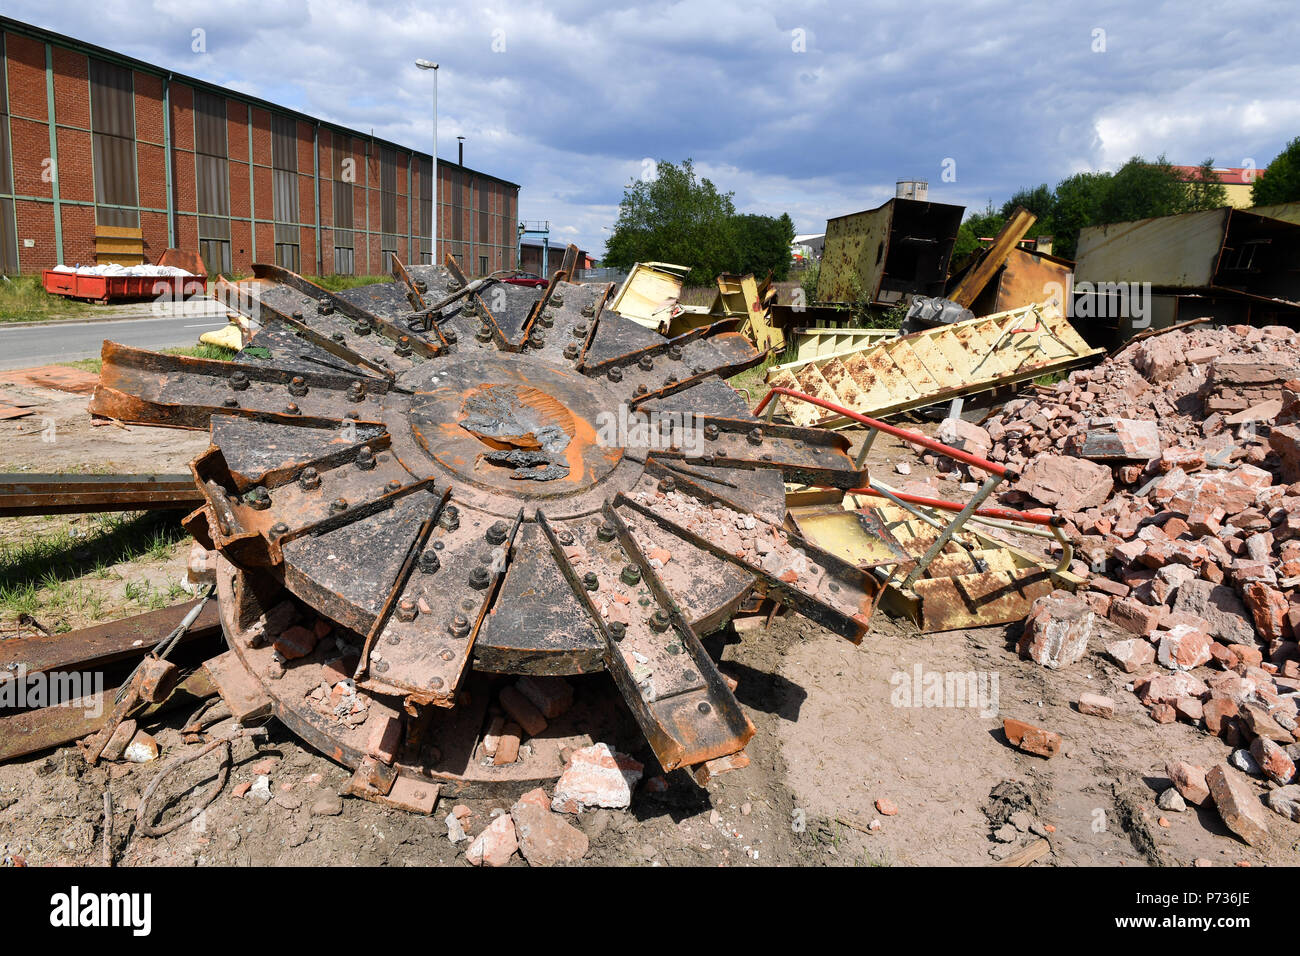 Bischofferode, Deutschland. 27th June, 2018. 27.06.2018, Bischofferode, Thuringen: Remains of the Demand Tower from the potash plant Bischofferode are located on the former company premises. Protests of the miners at the close of the early 1990s made the work known nationwide. (to dpa 'hunger strike! - Search for clues 25 years after the Kali rebellion' from 28.06.2018) Credit: Jens Kalaene/dpa central image/dpa | usage worldwide/dpa/Alamy Live News - Stock Image